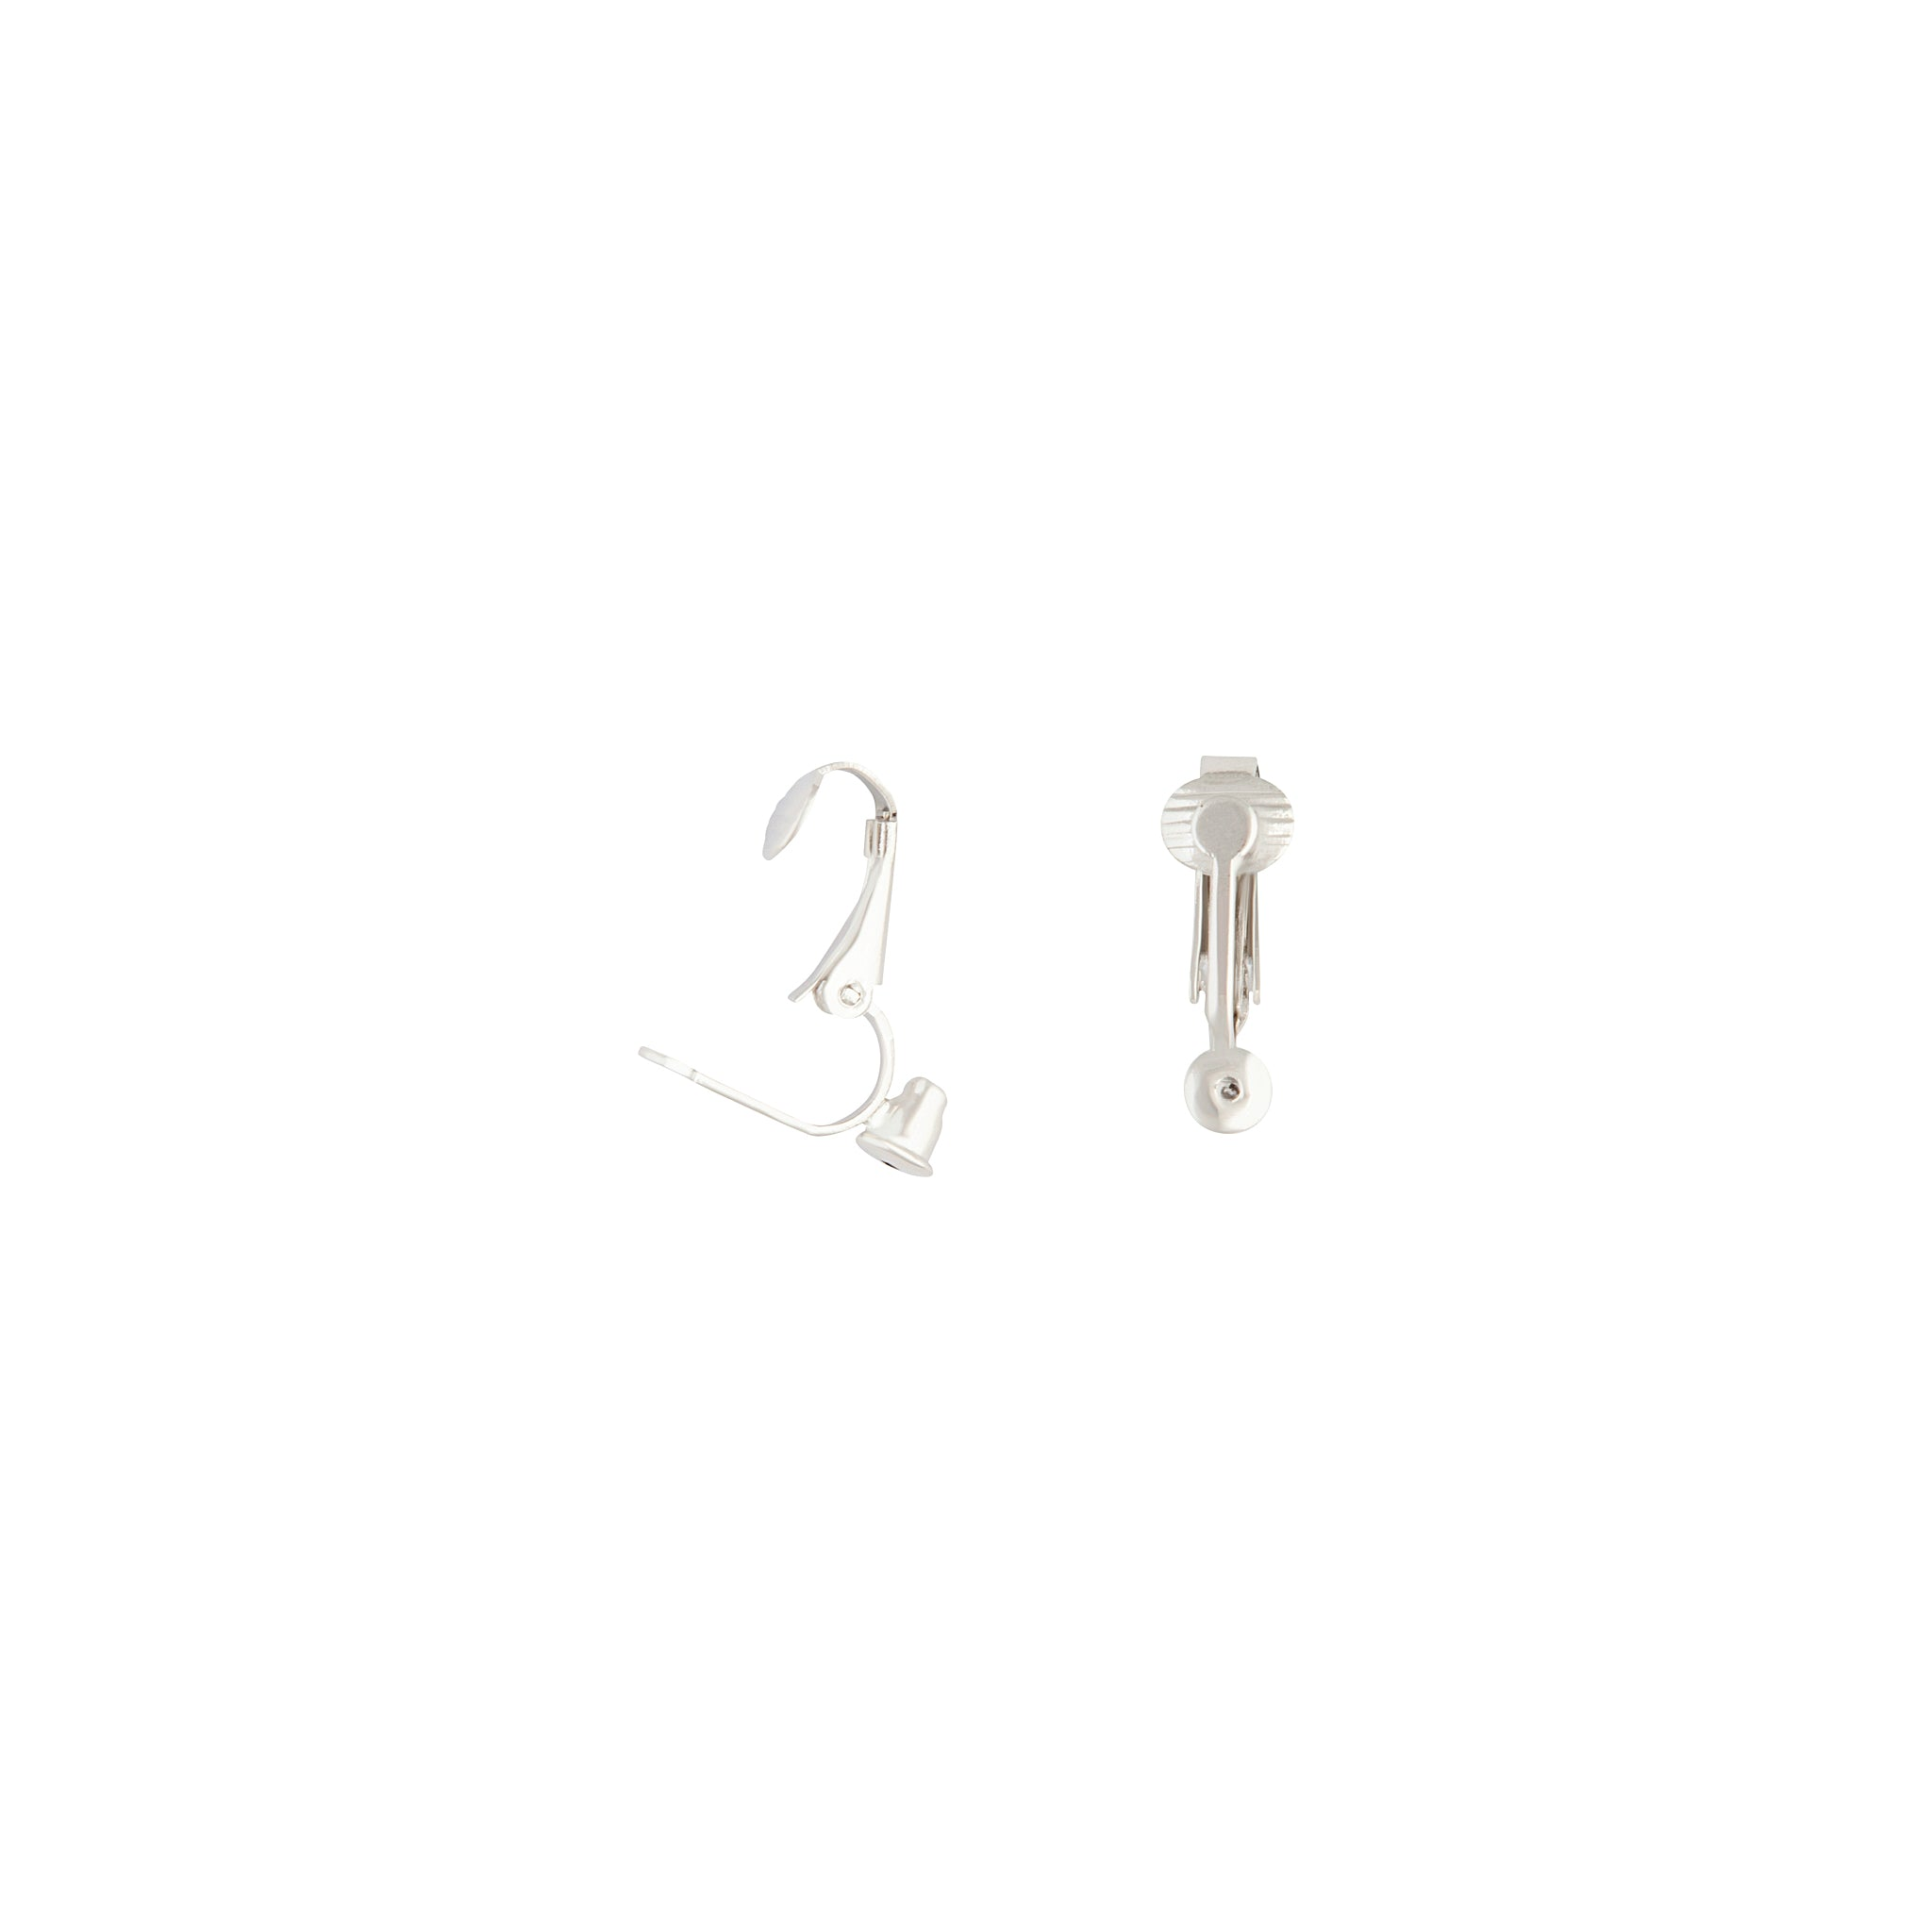 Silver Clip On Stud Earring Converters